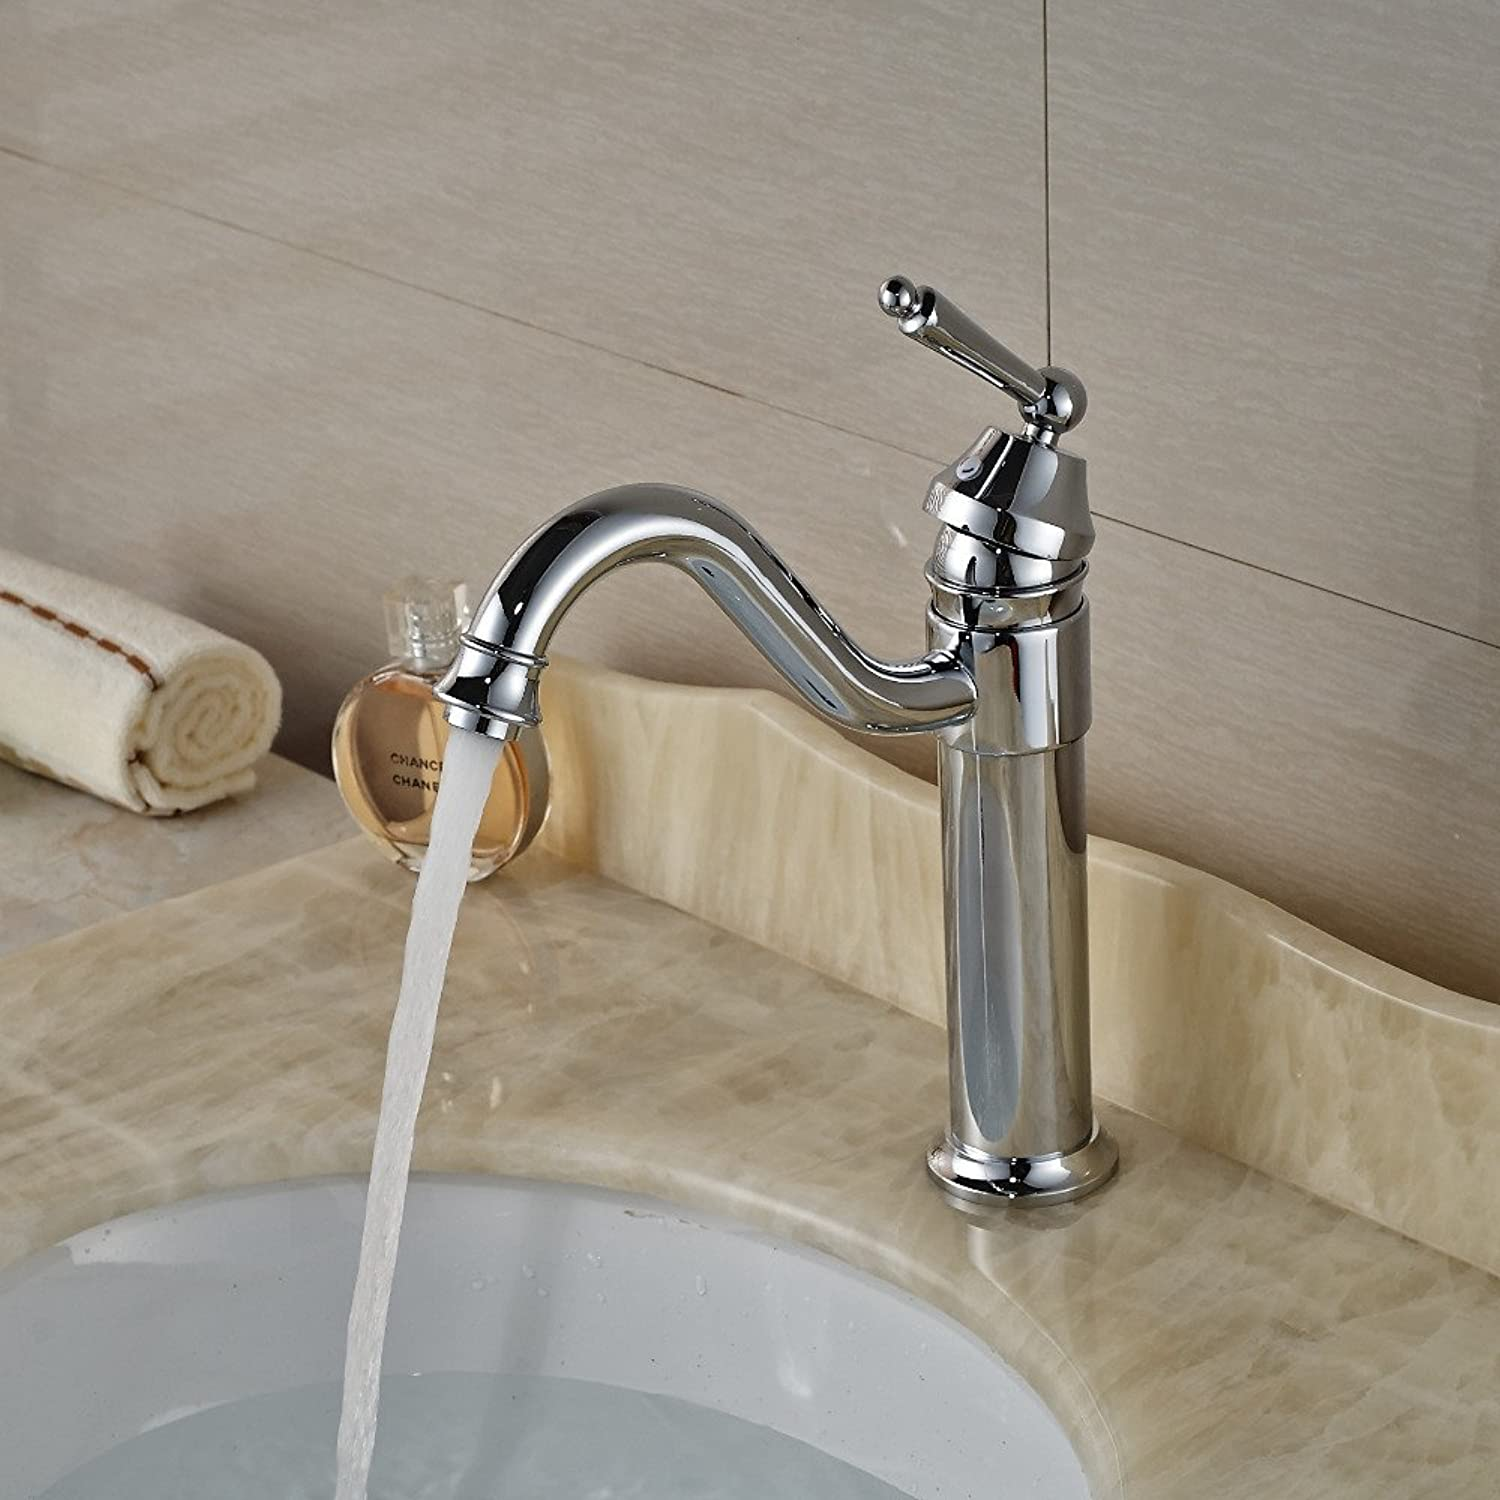 Tourmeler Chrome Finished Single Handle Bathroom Sink Faucet Deck Mount With Hot Cold Water Mixer Taps